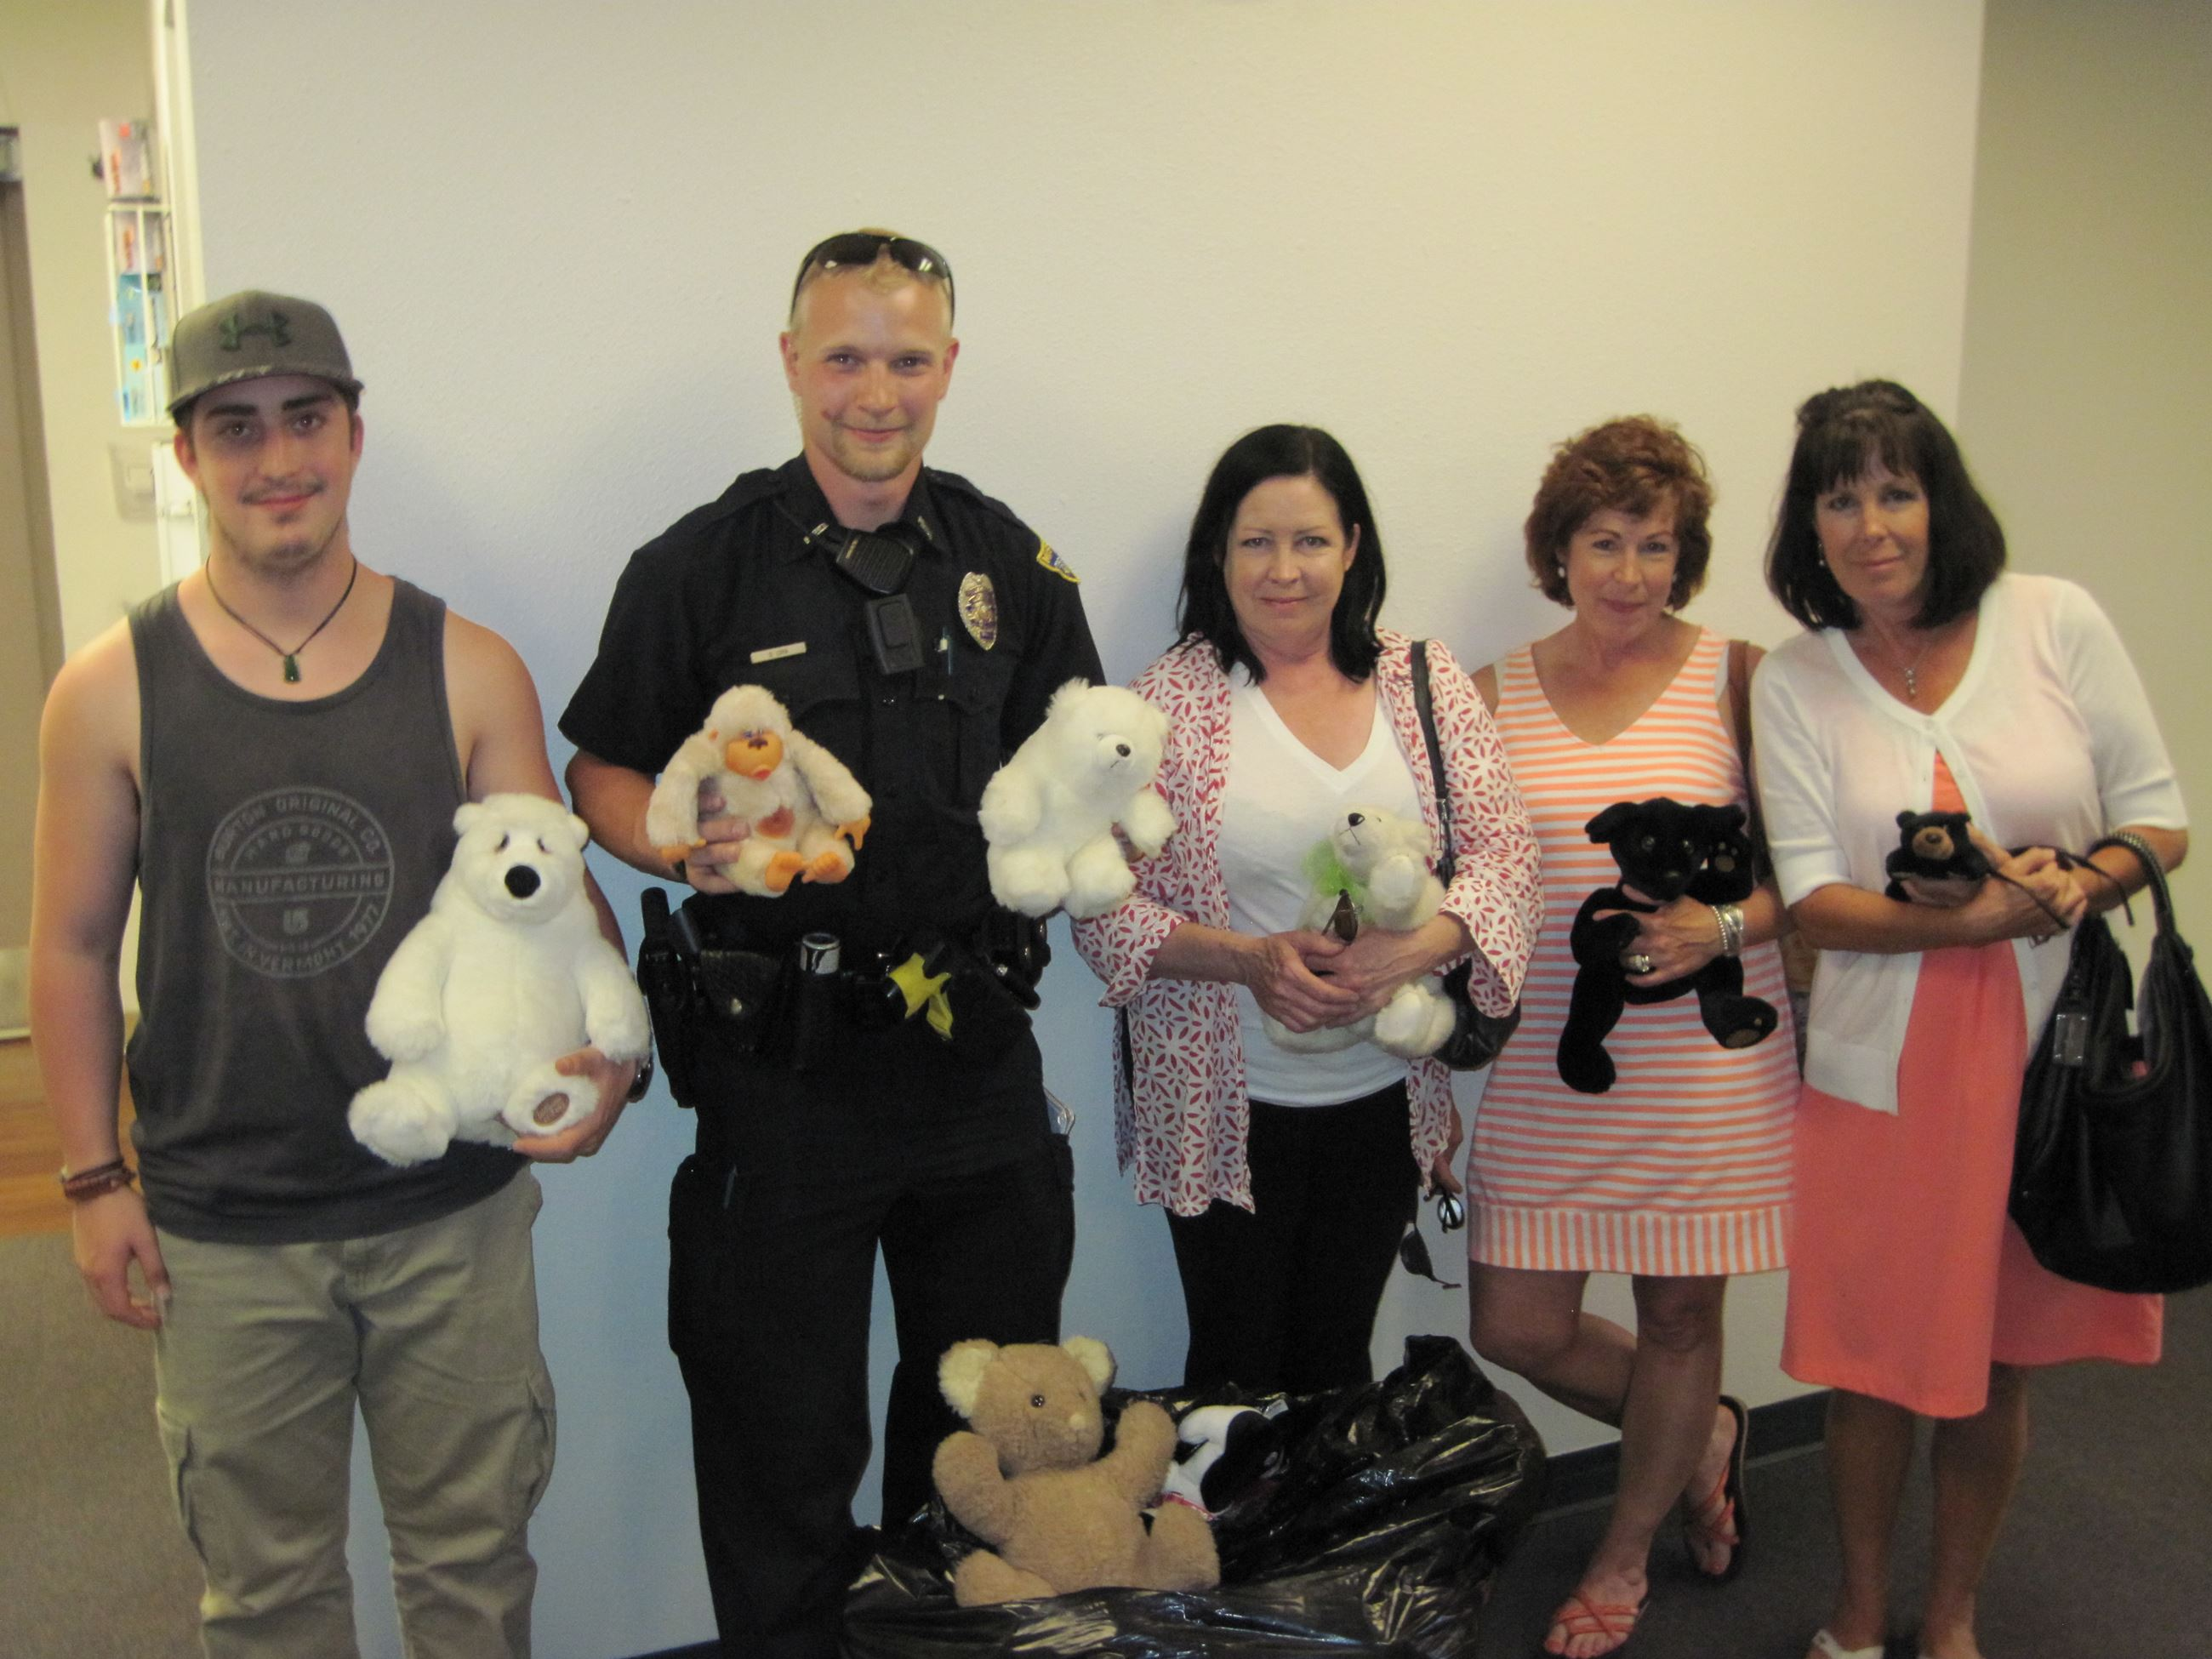 Group of People Holding Stuffed Animals Standing with a Police Officer